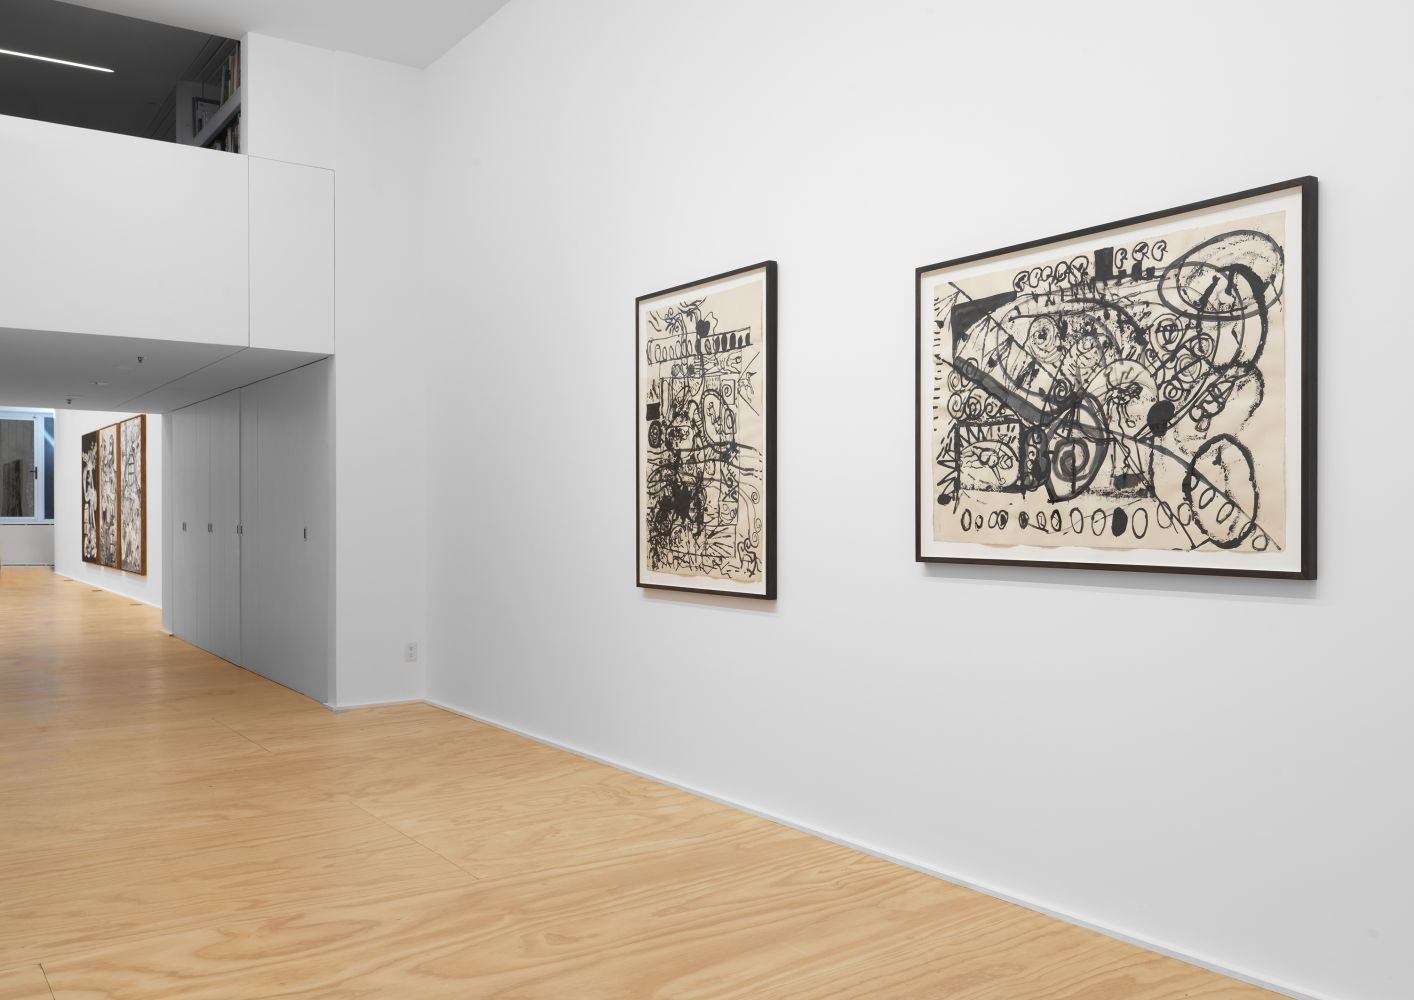 Exhibition View, Tobias Pils, 3 paintings 2 drawings 1 triptych, Eva Presenhuber, NY install 2